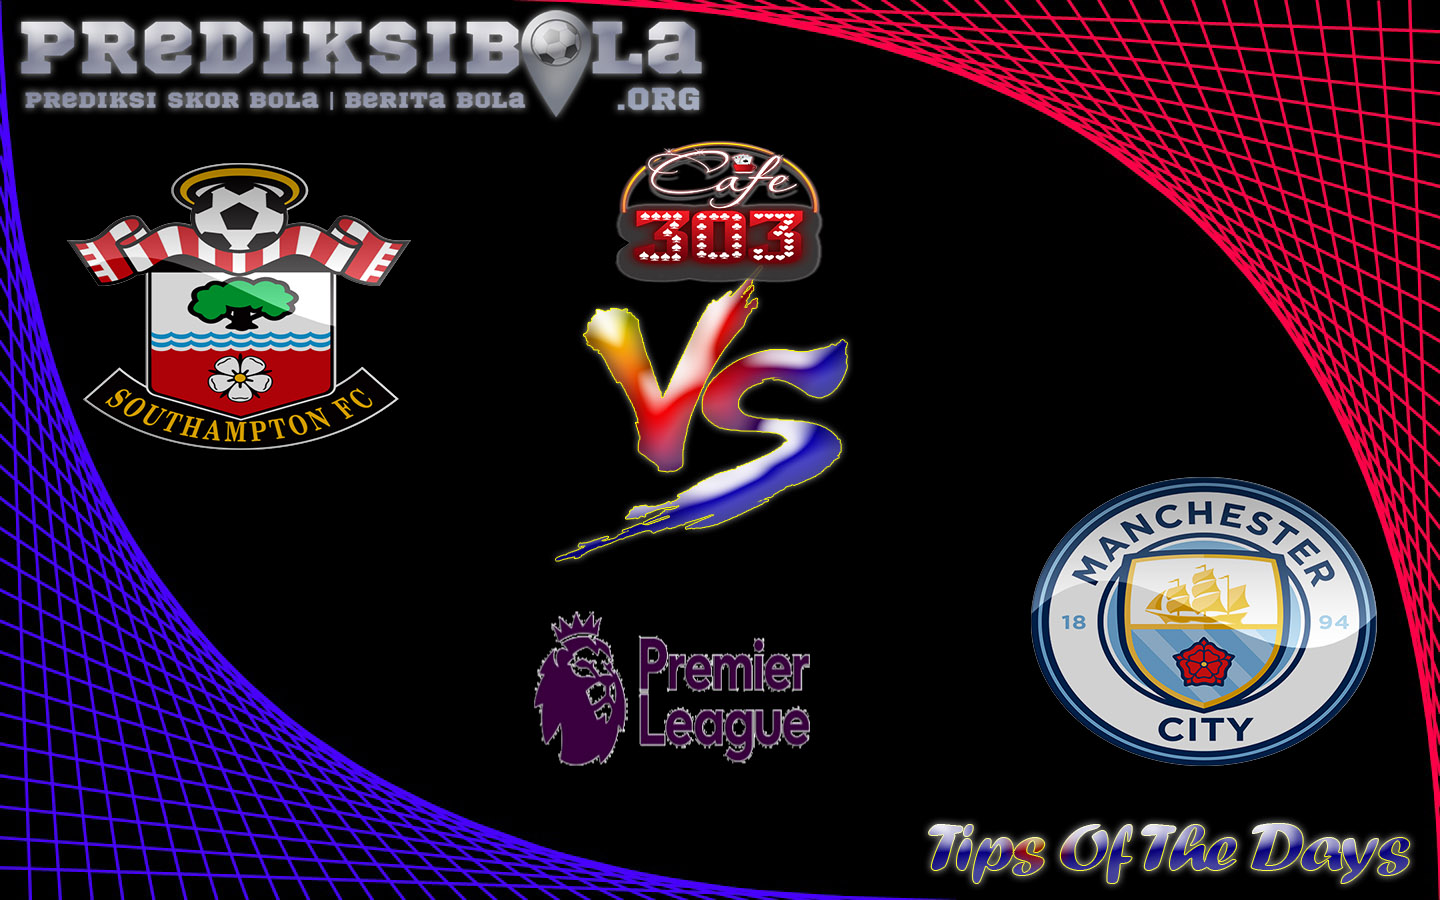 Prediksi Skor Southampton Vs Manchester City 15 April 2017